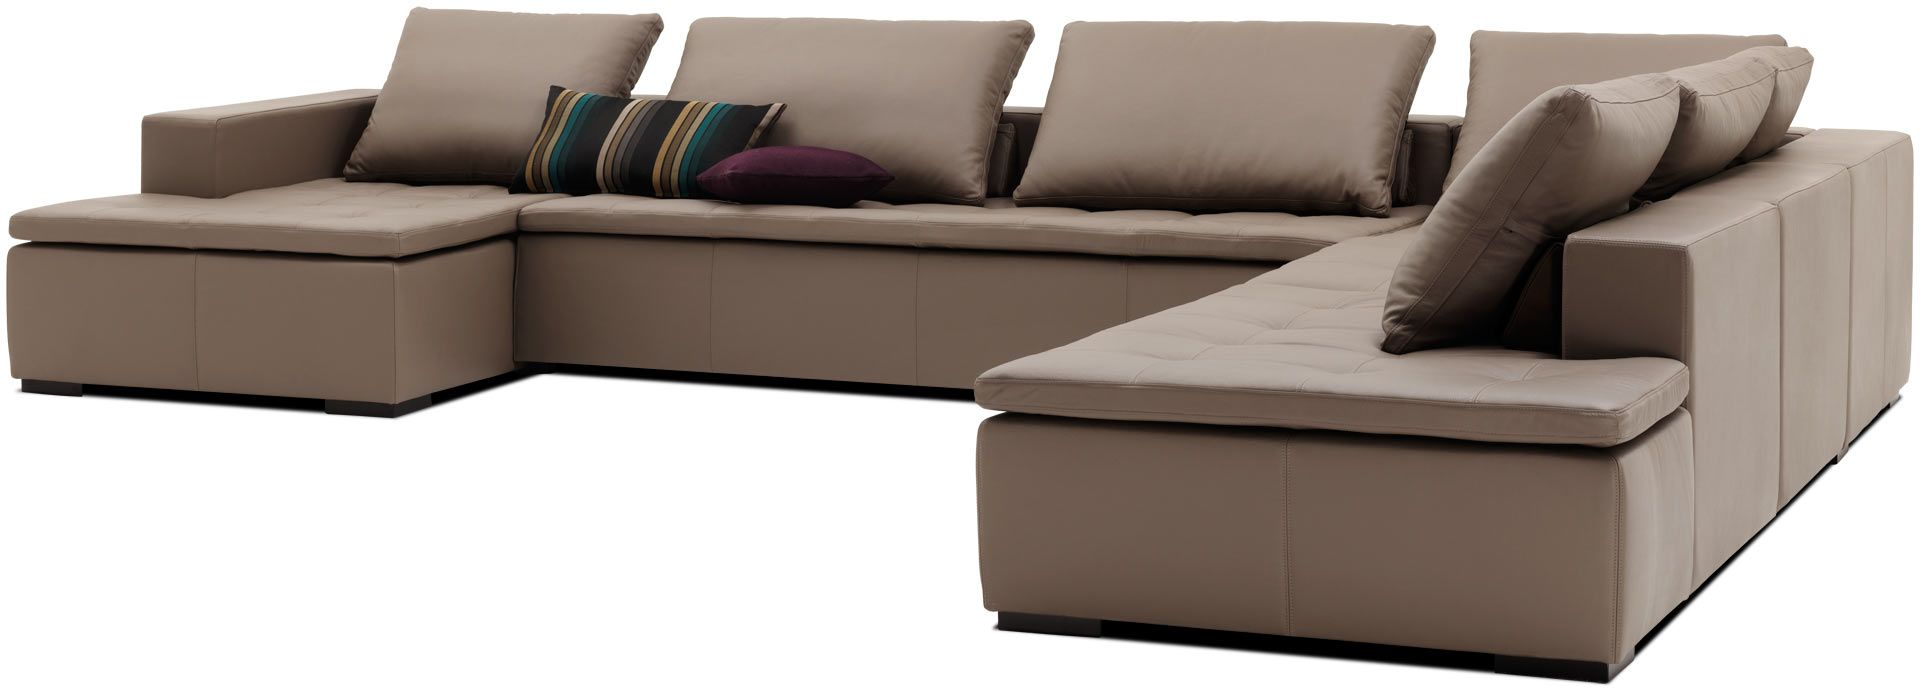 Modern sofas with lounging units quality from BoConcept FSL